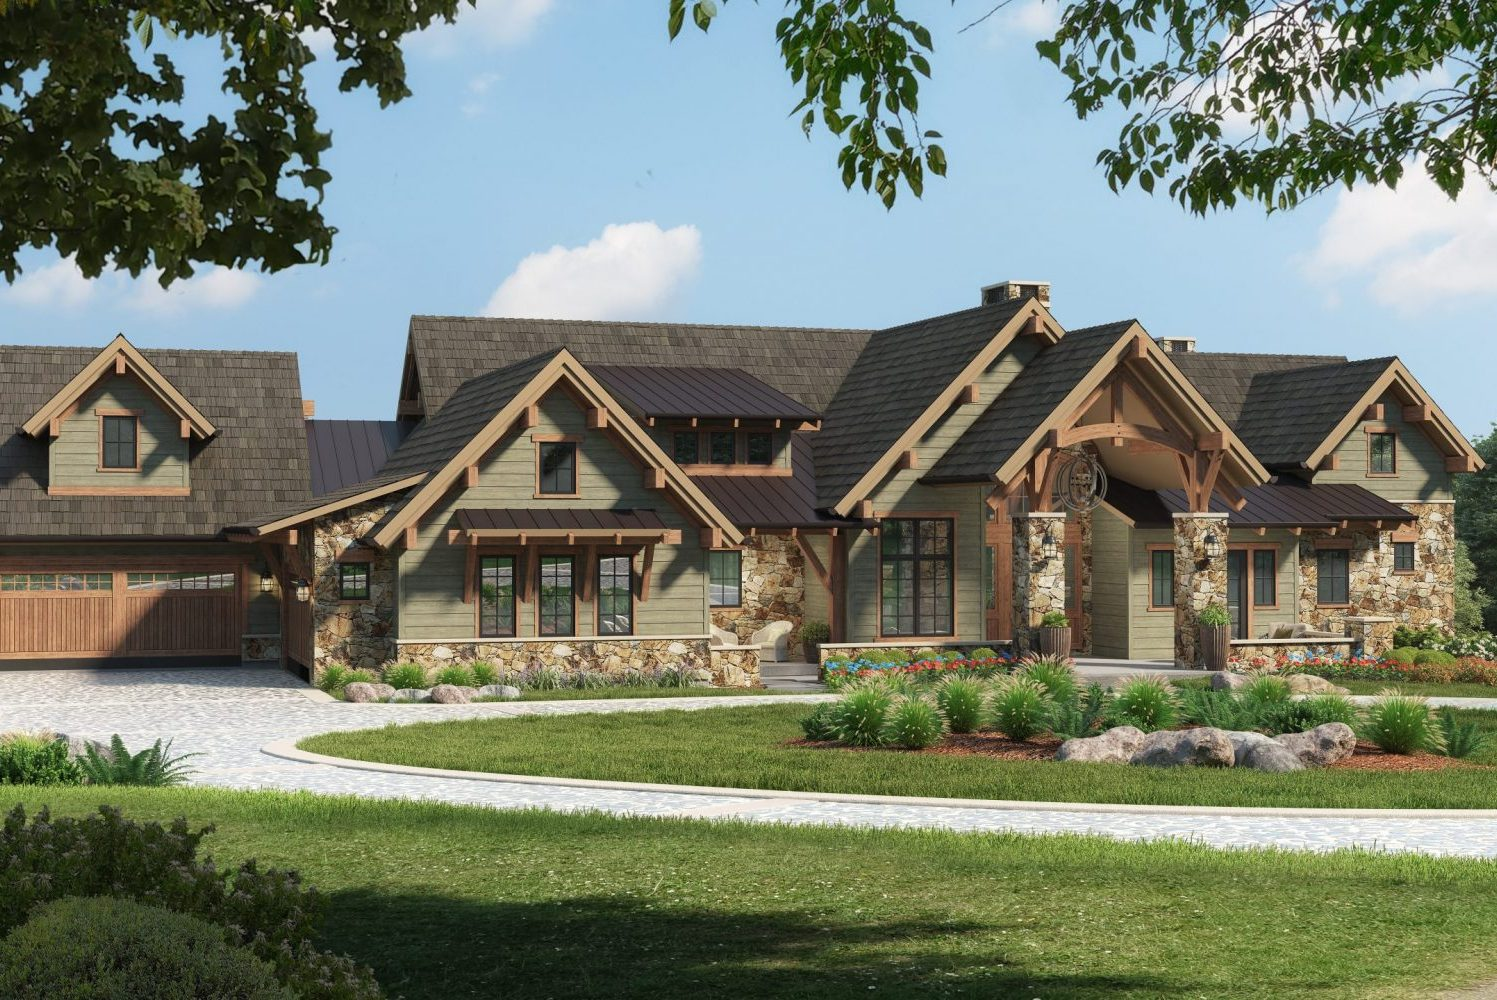 Traditional Mountain Modern Craftsmans style custom home in Colorado designed by Godden Sudik Architects